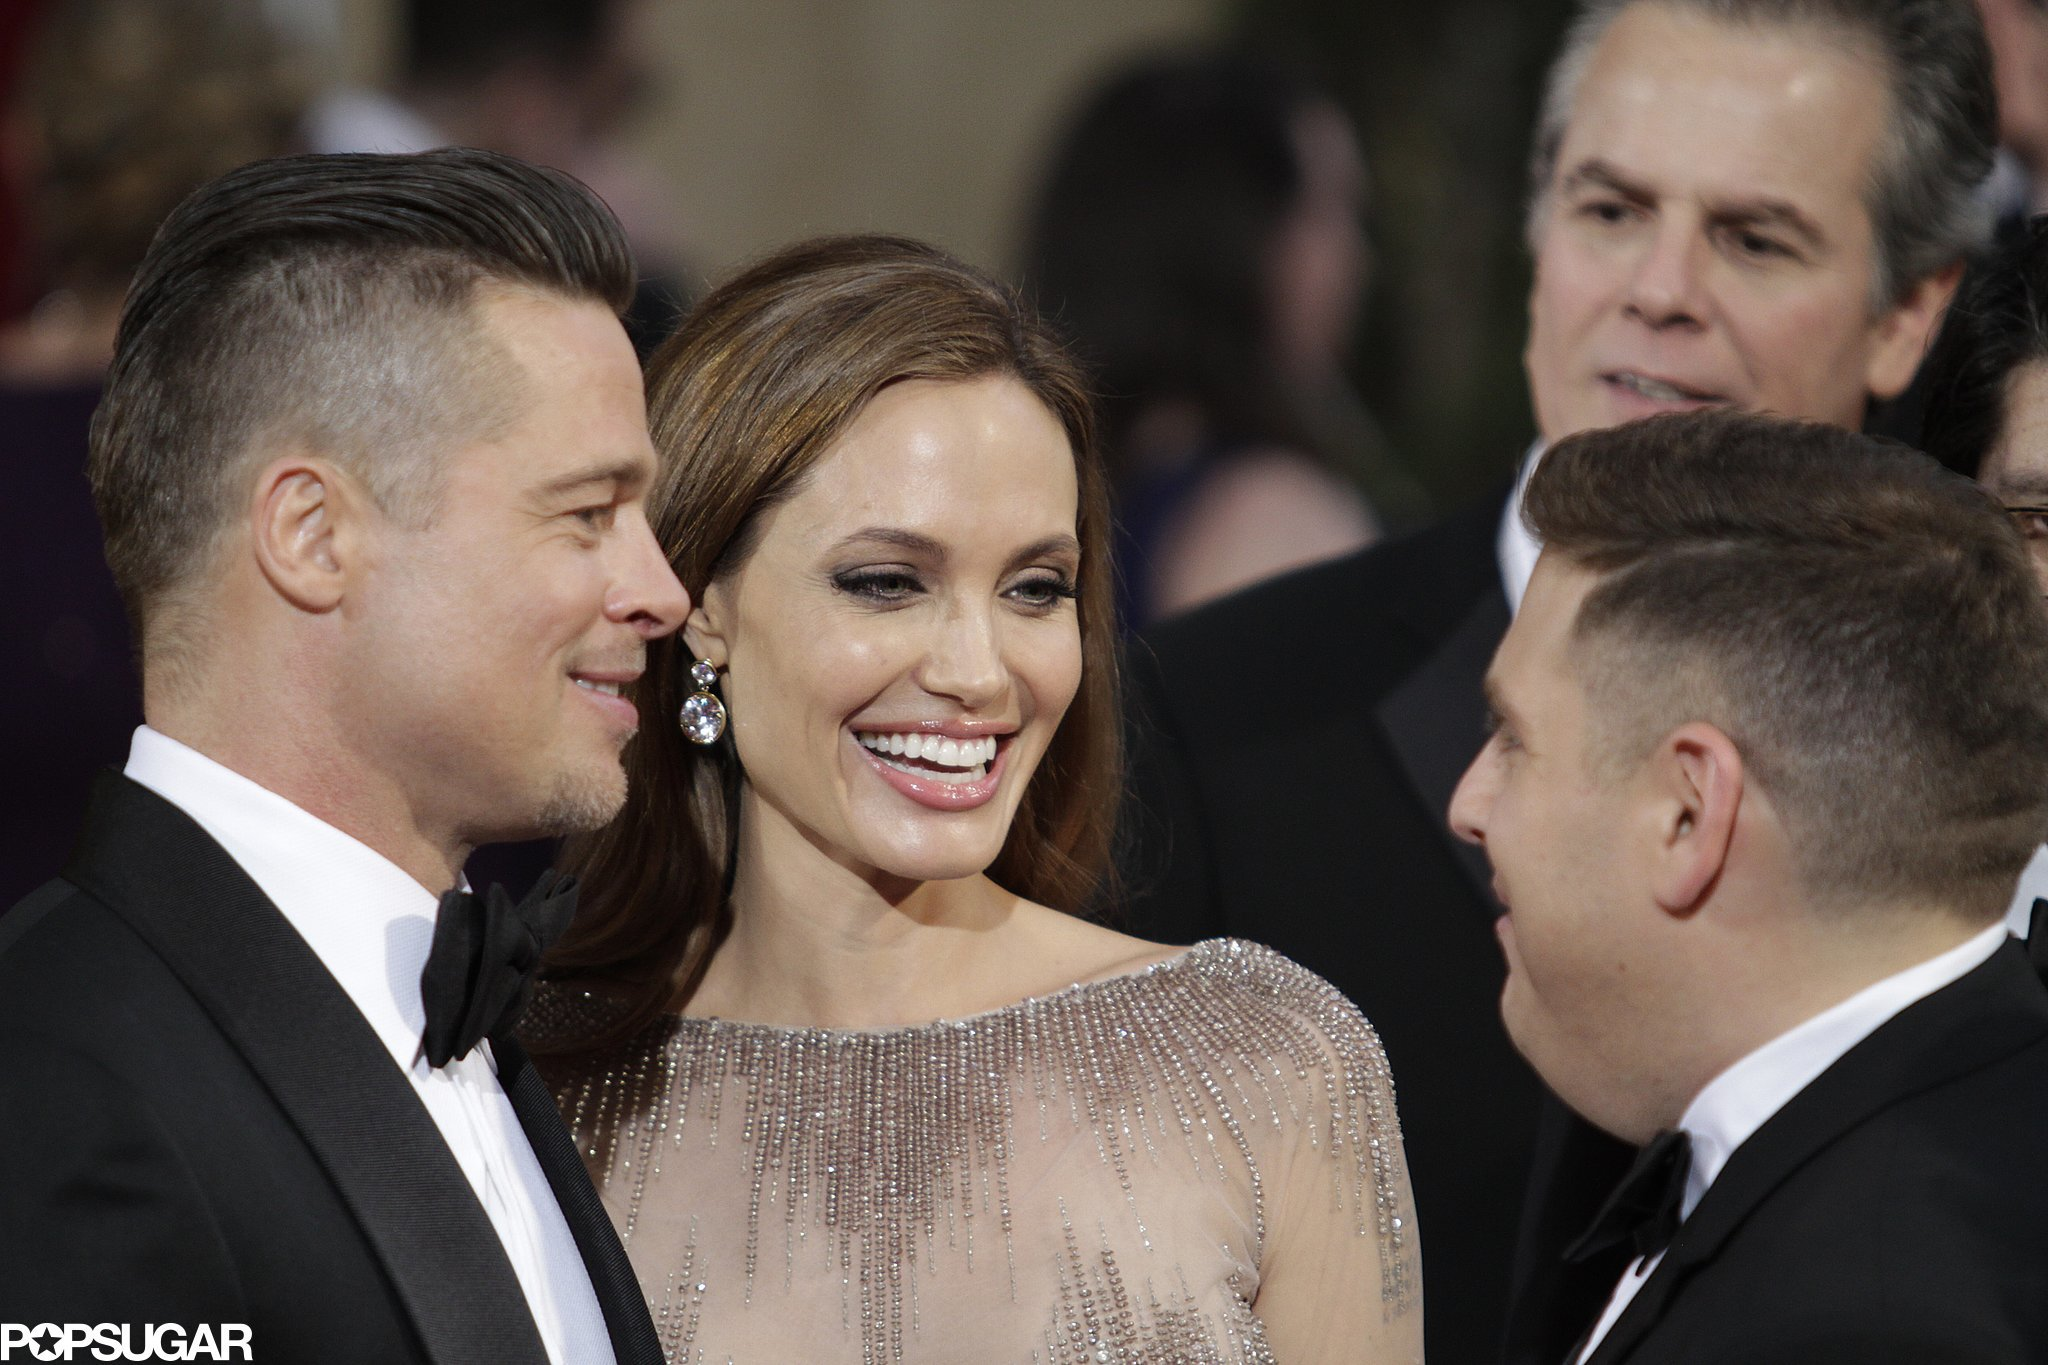 Brad Pitt and Angelina Jolie stopped to chat with Jonah Hill on the red carpet.